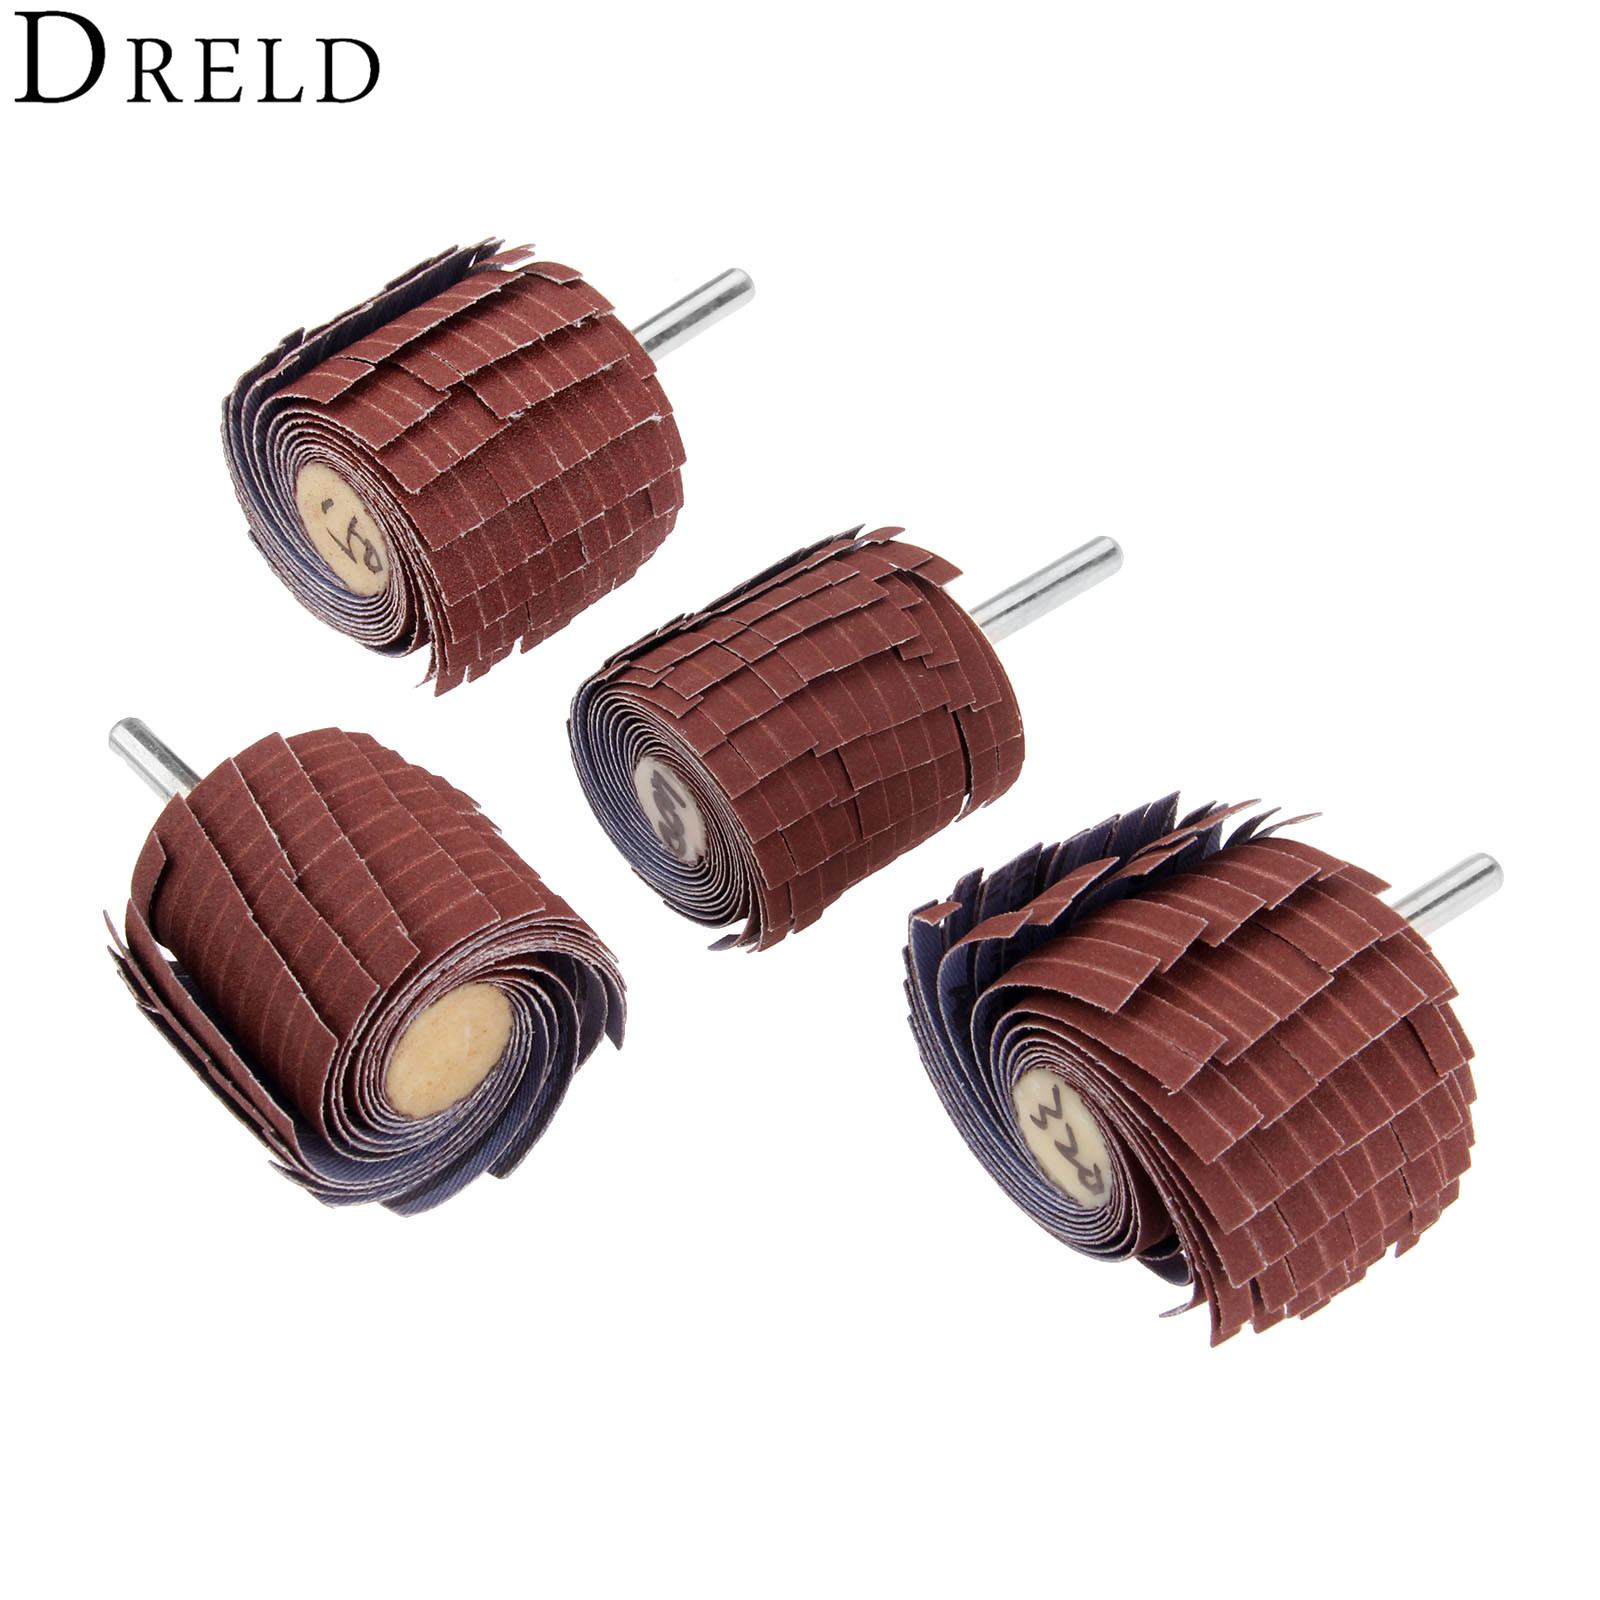 DRELD 1Pc Dremel Accessories 150-400 Grit Sanding Flap Wheel 6mm Shank Sanding Grinding Sand Paper Shutter Wheel for Rotary Tool 10pcs dremel accessories sandpaper sanding flap polishing wheels sanding disc set shutter polishing wheel for rotary power tools